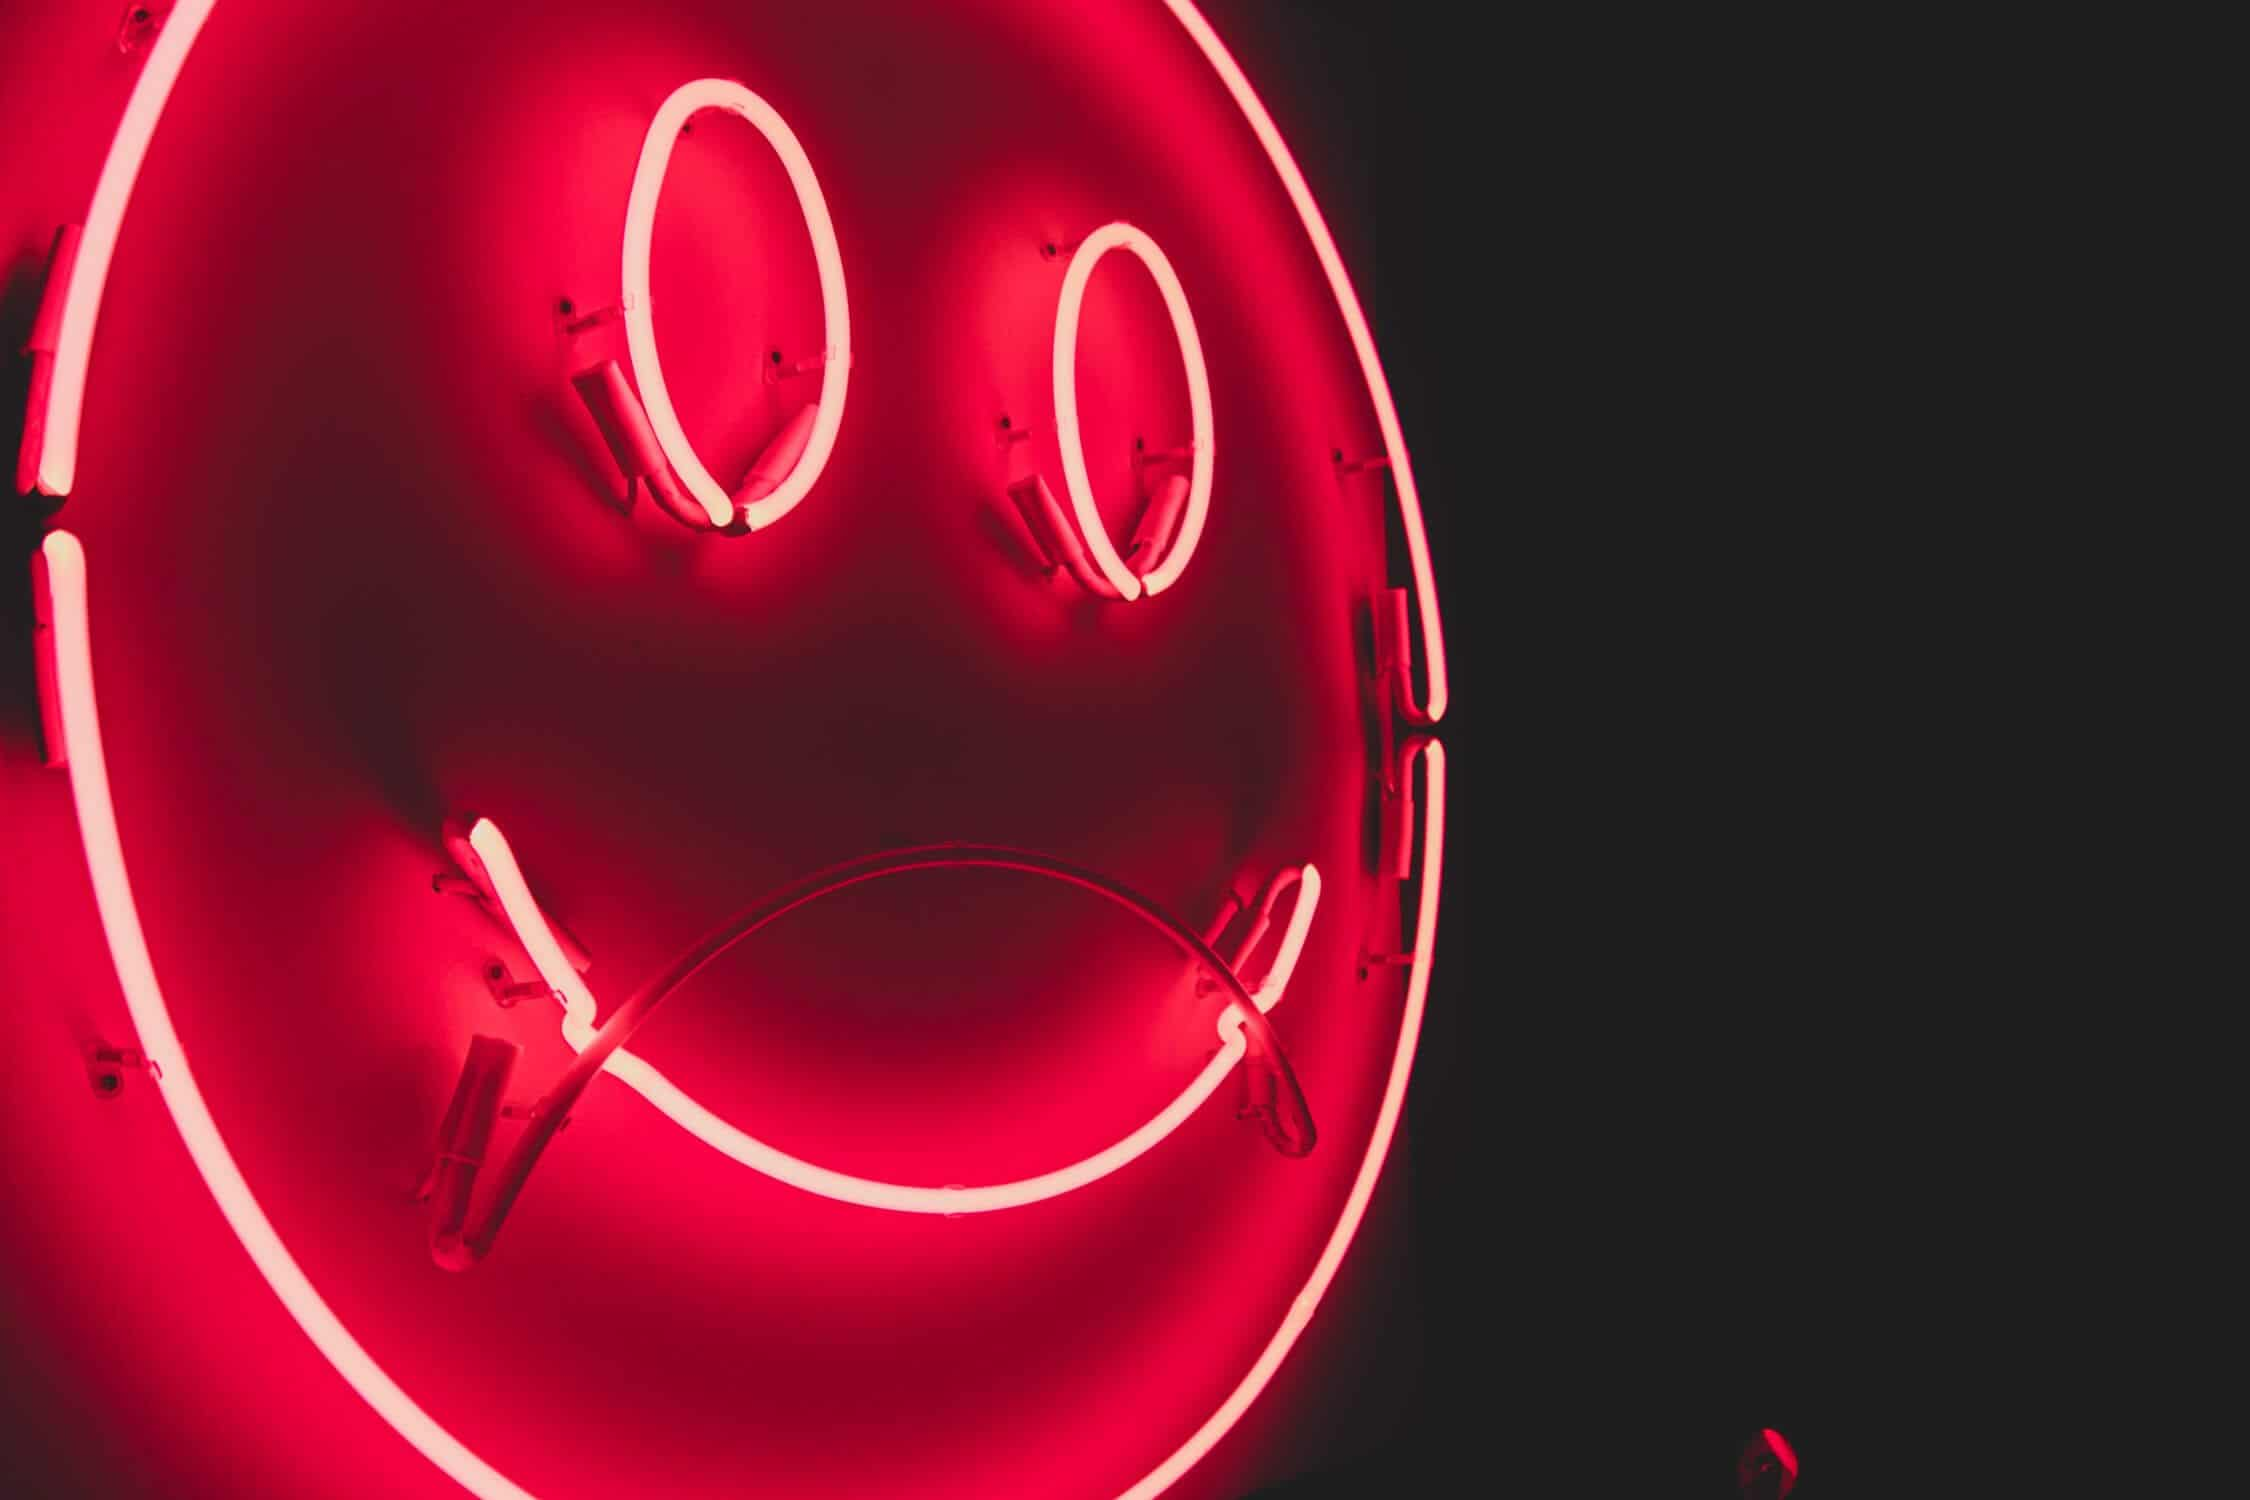 neon smiling face